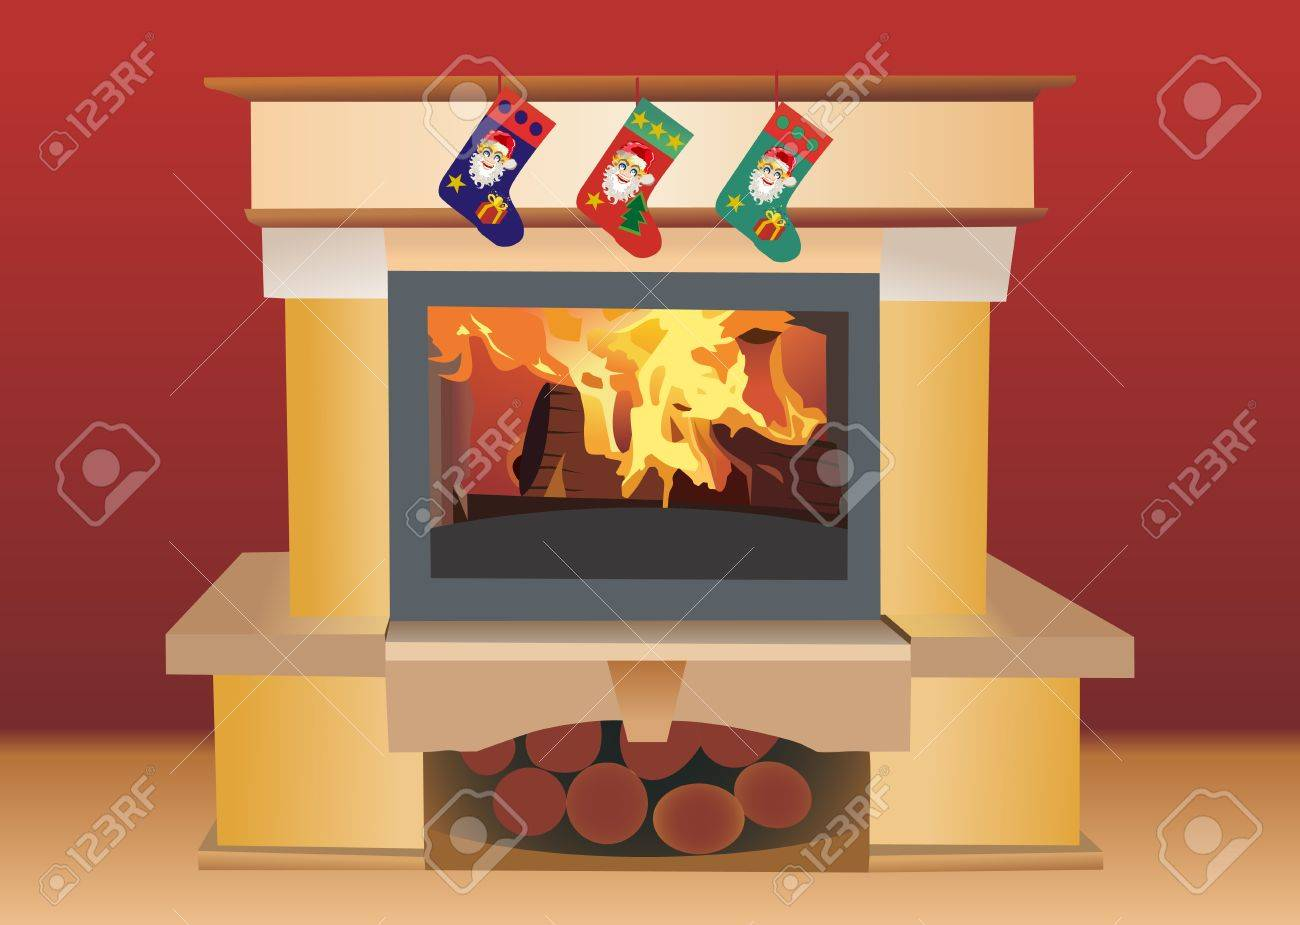 Christmas fireplace Stock Vector - 13928901